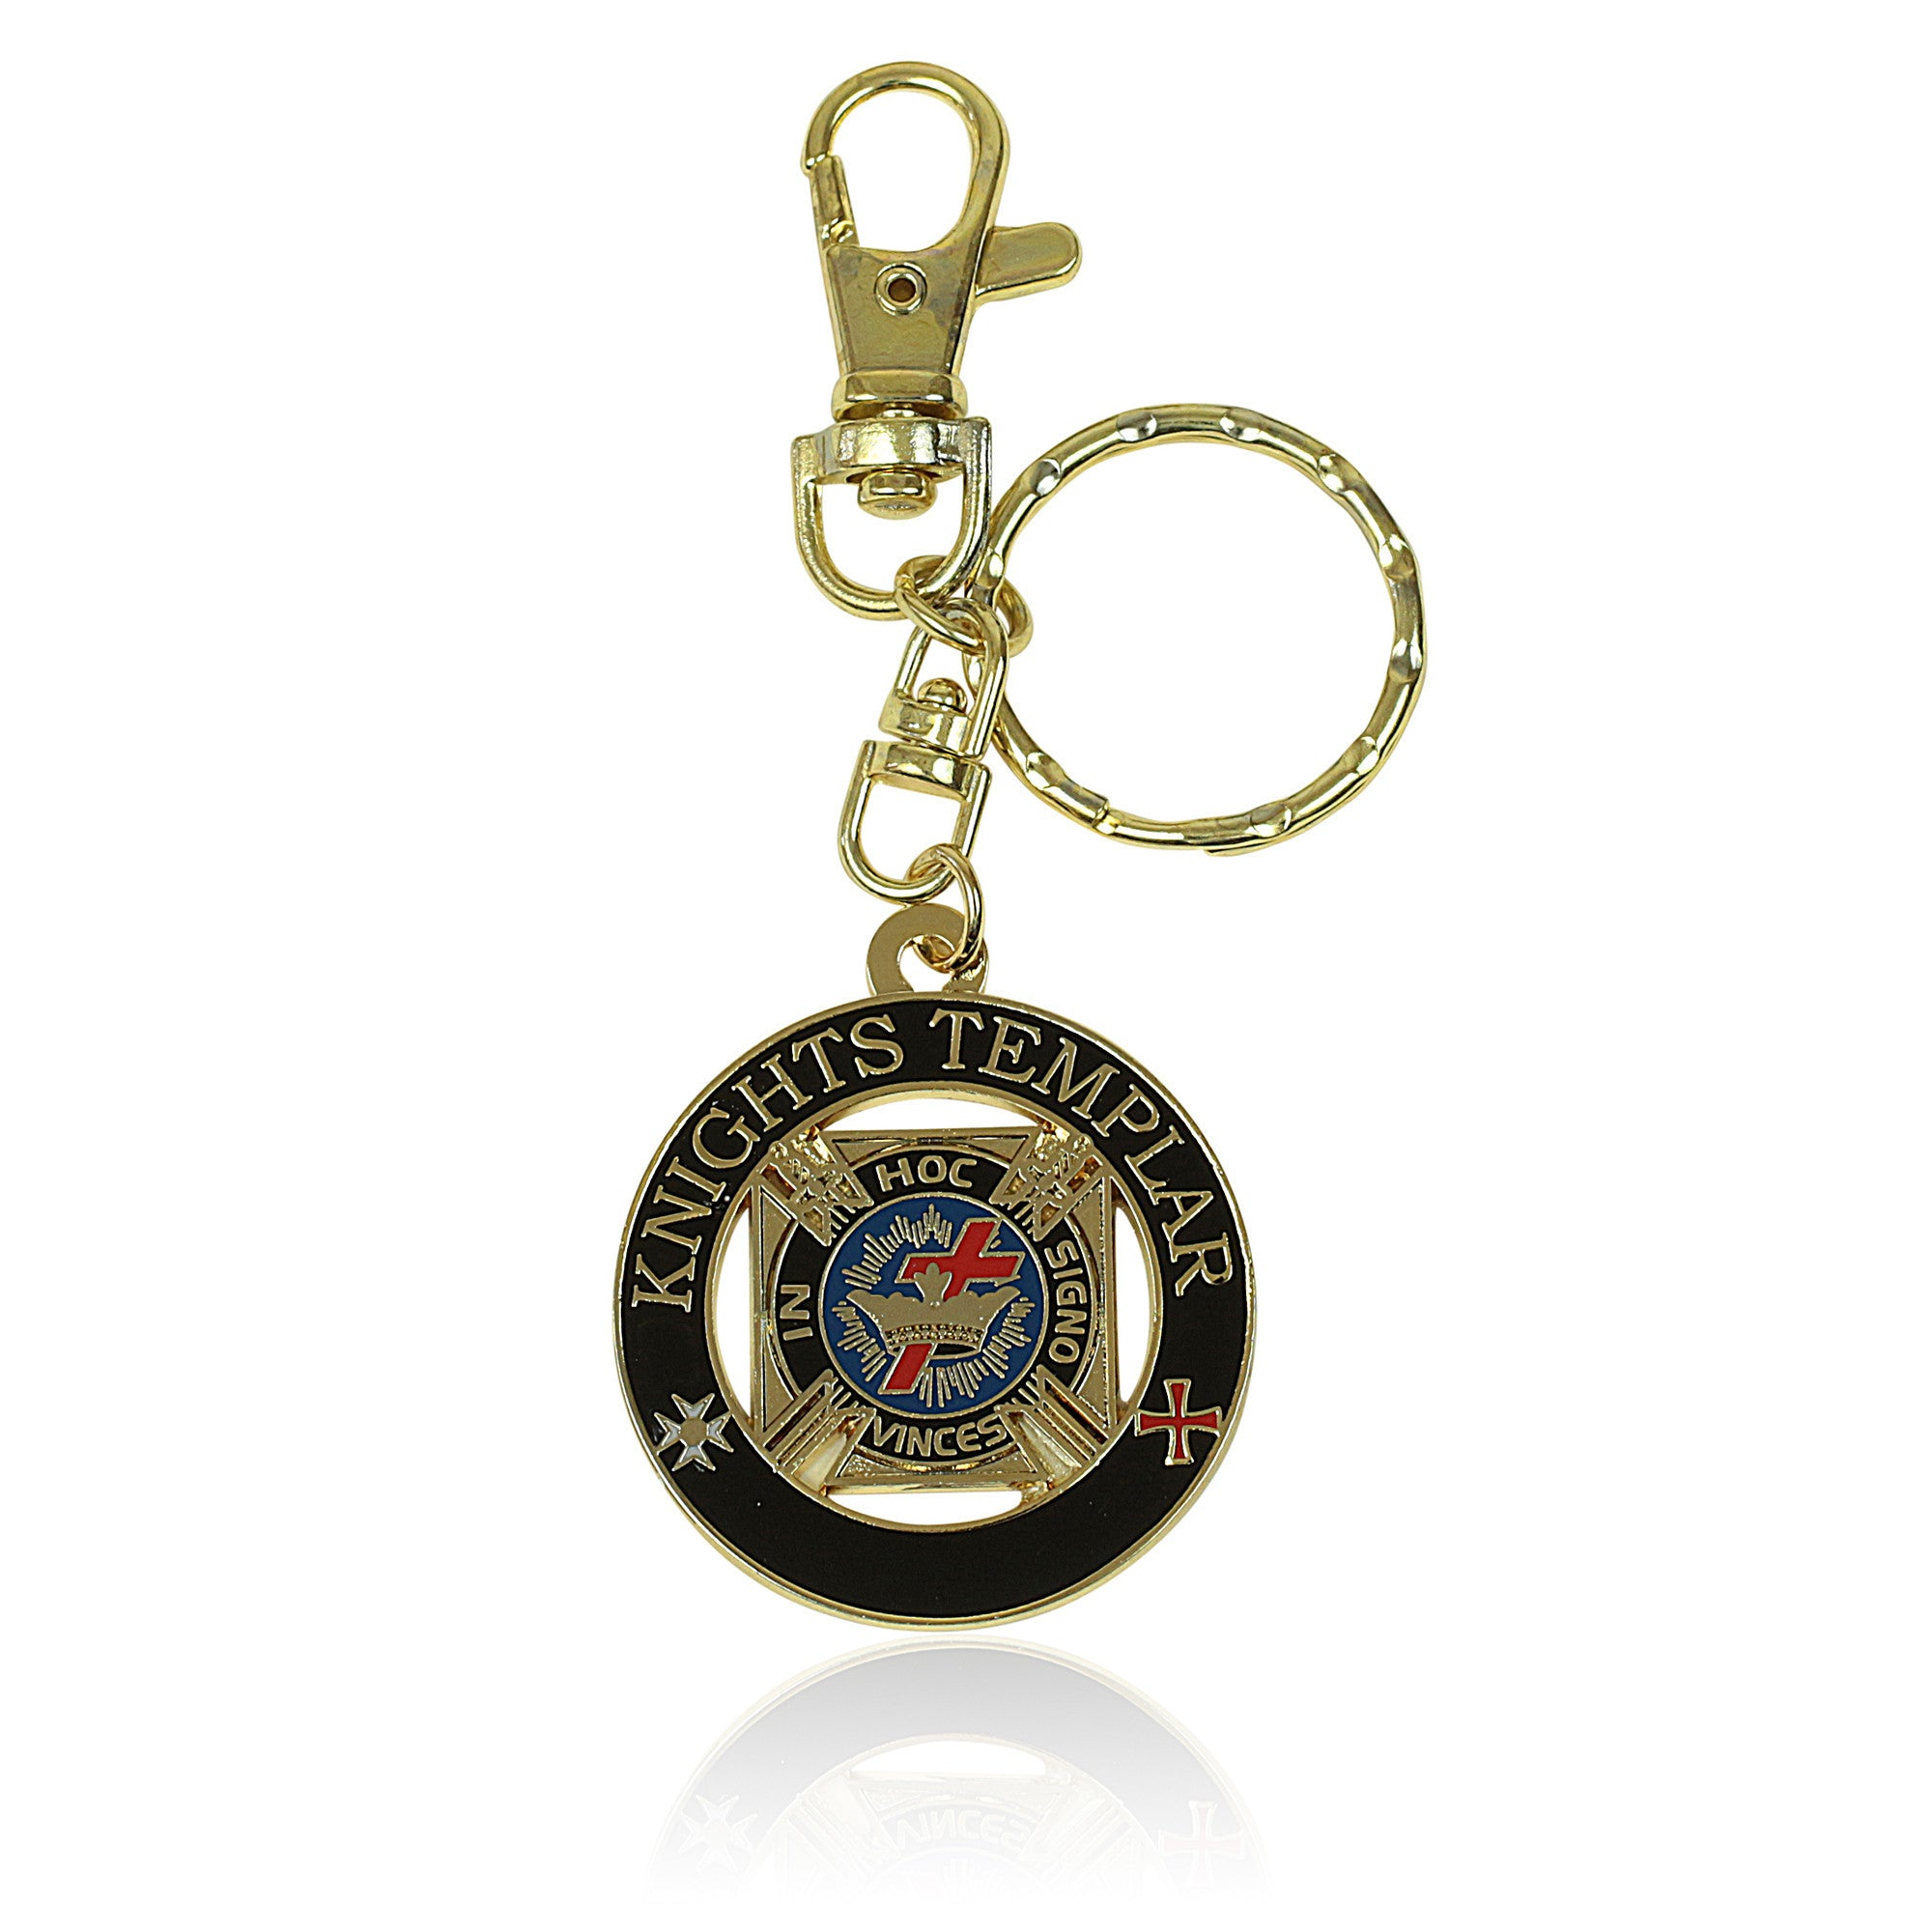 Knights Templar York Rite Masonic Key Chain